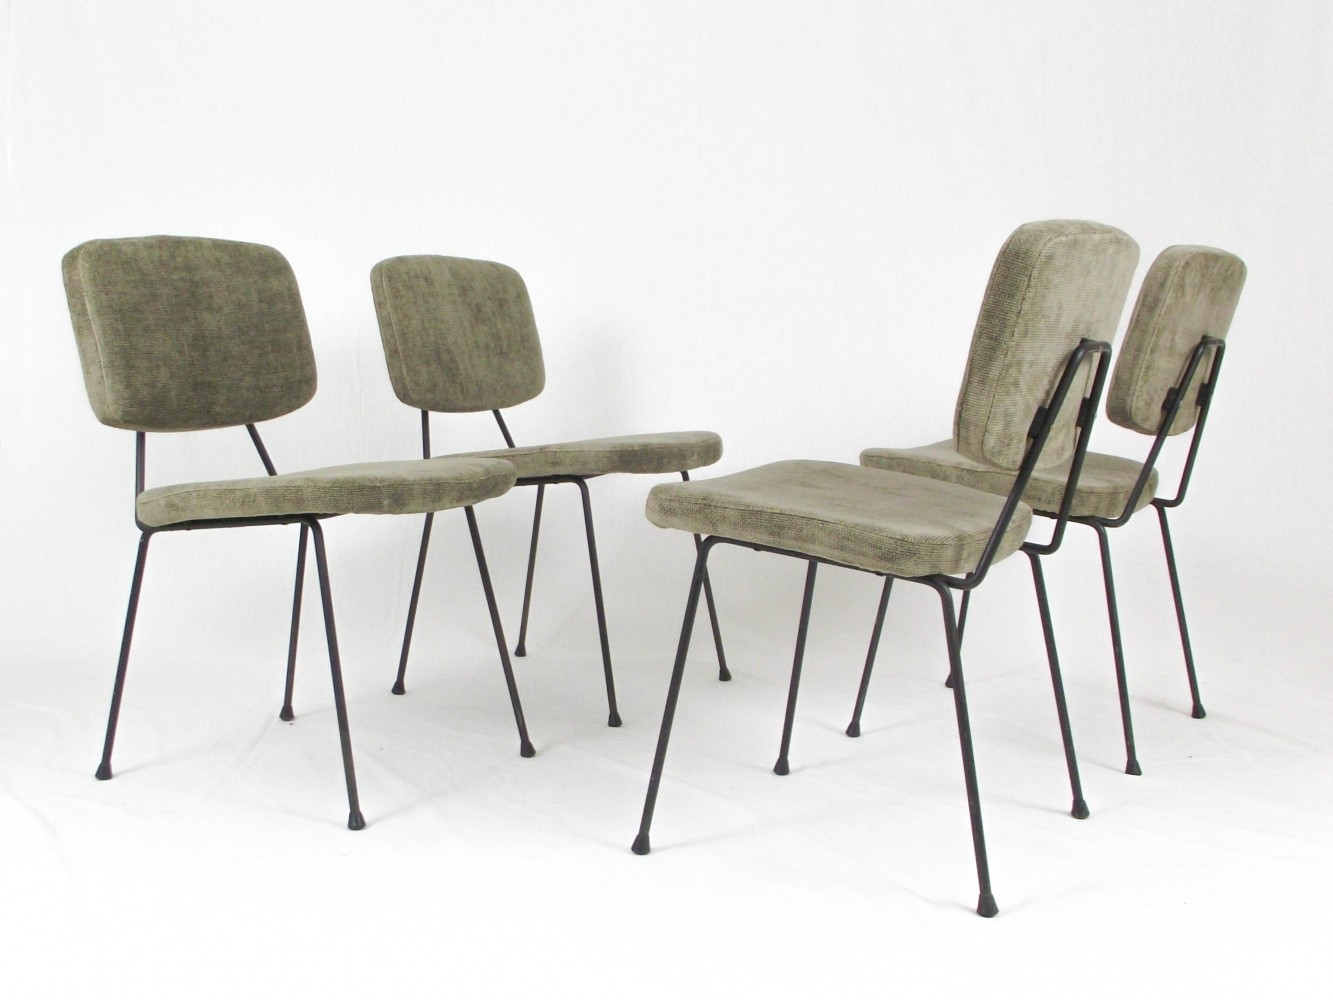 Set of 4 CM 196 dining chairs by Pierre Paulin for Thonet, 1950s